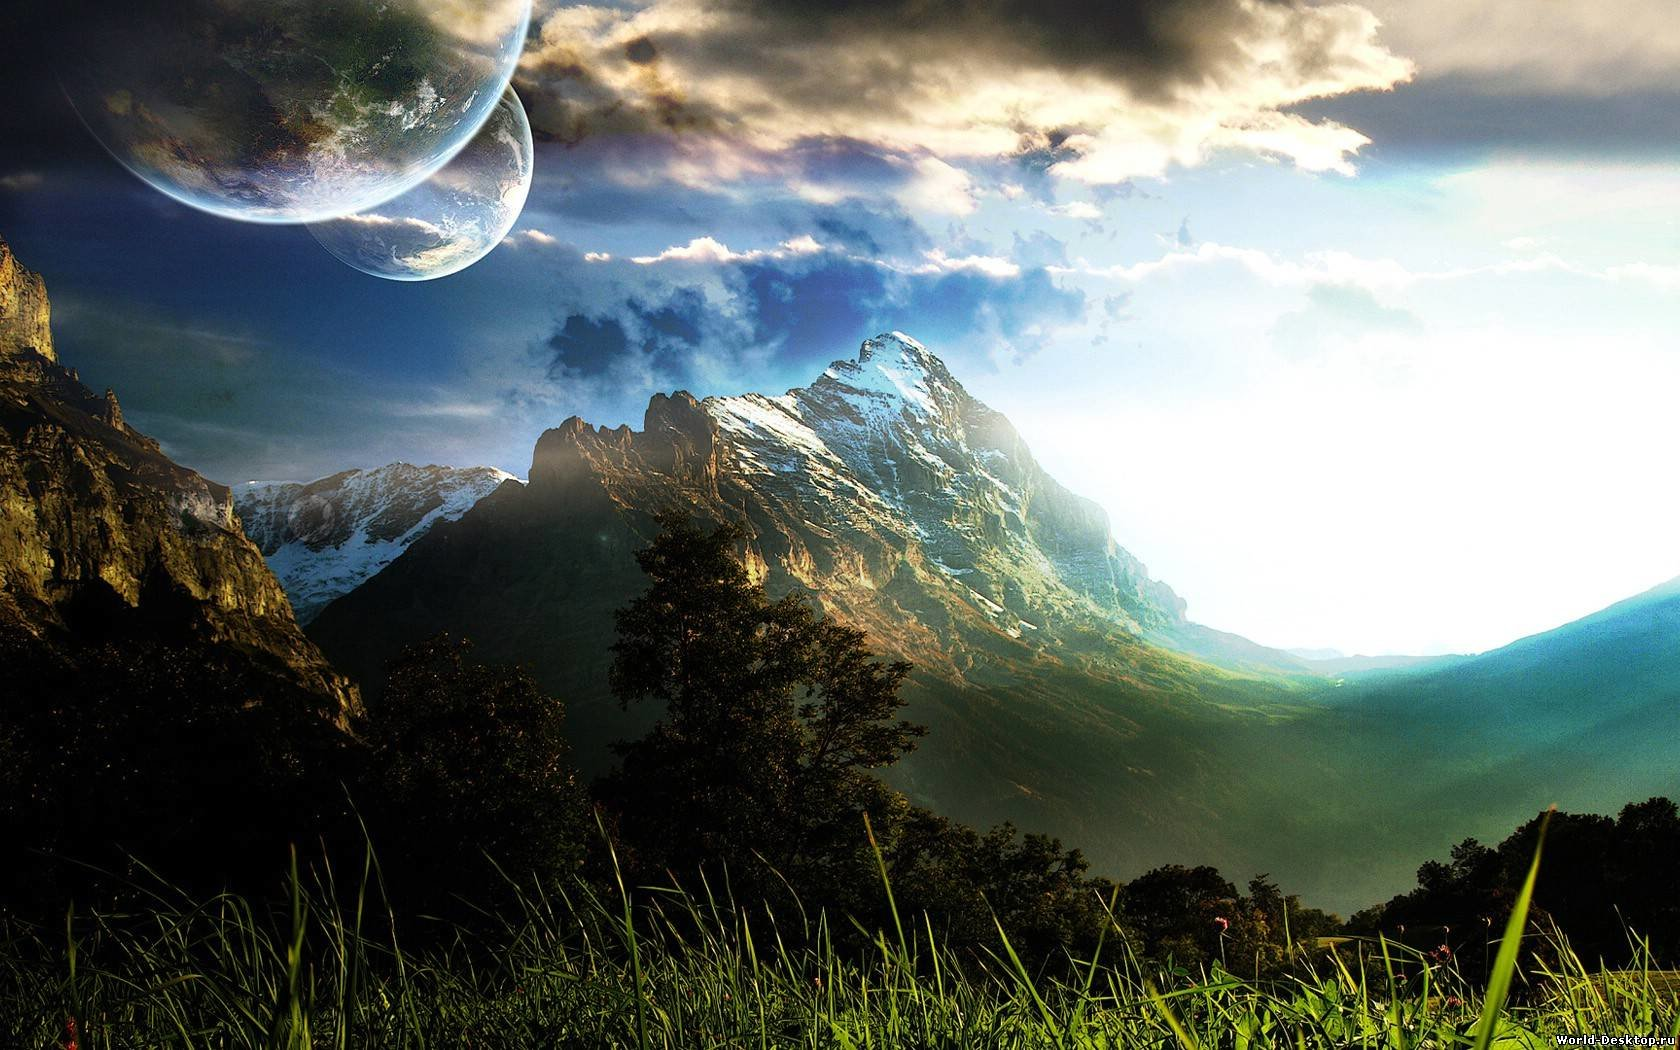 Download hd 1680x1050 Sci Fi landscape PC background ID:232833 for free